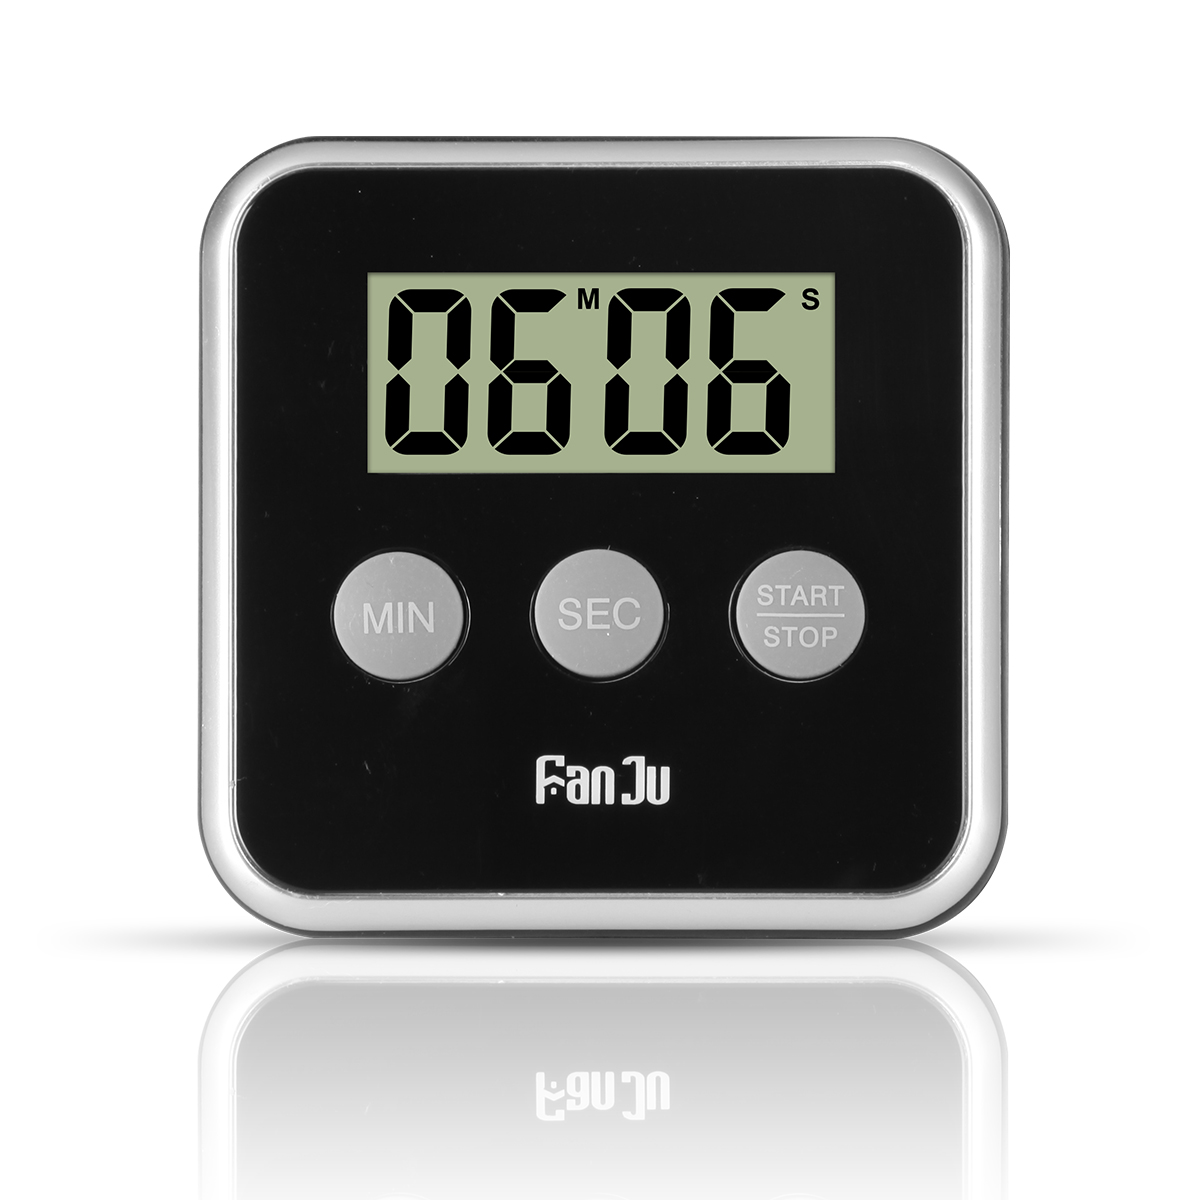 FanJu FJ231 Mini Digital Kitchen Timer Large Display  Cooking Timer Count Up Alarm Clock Kitchen Accessories Hot